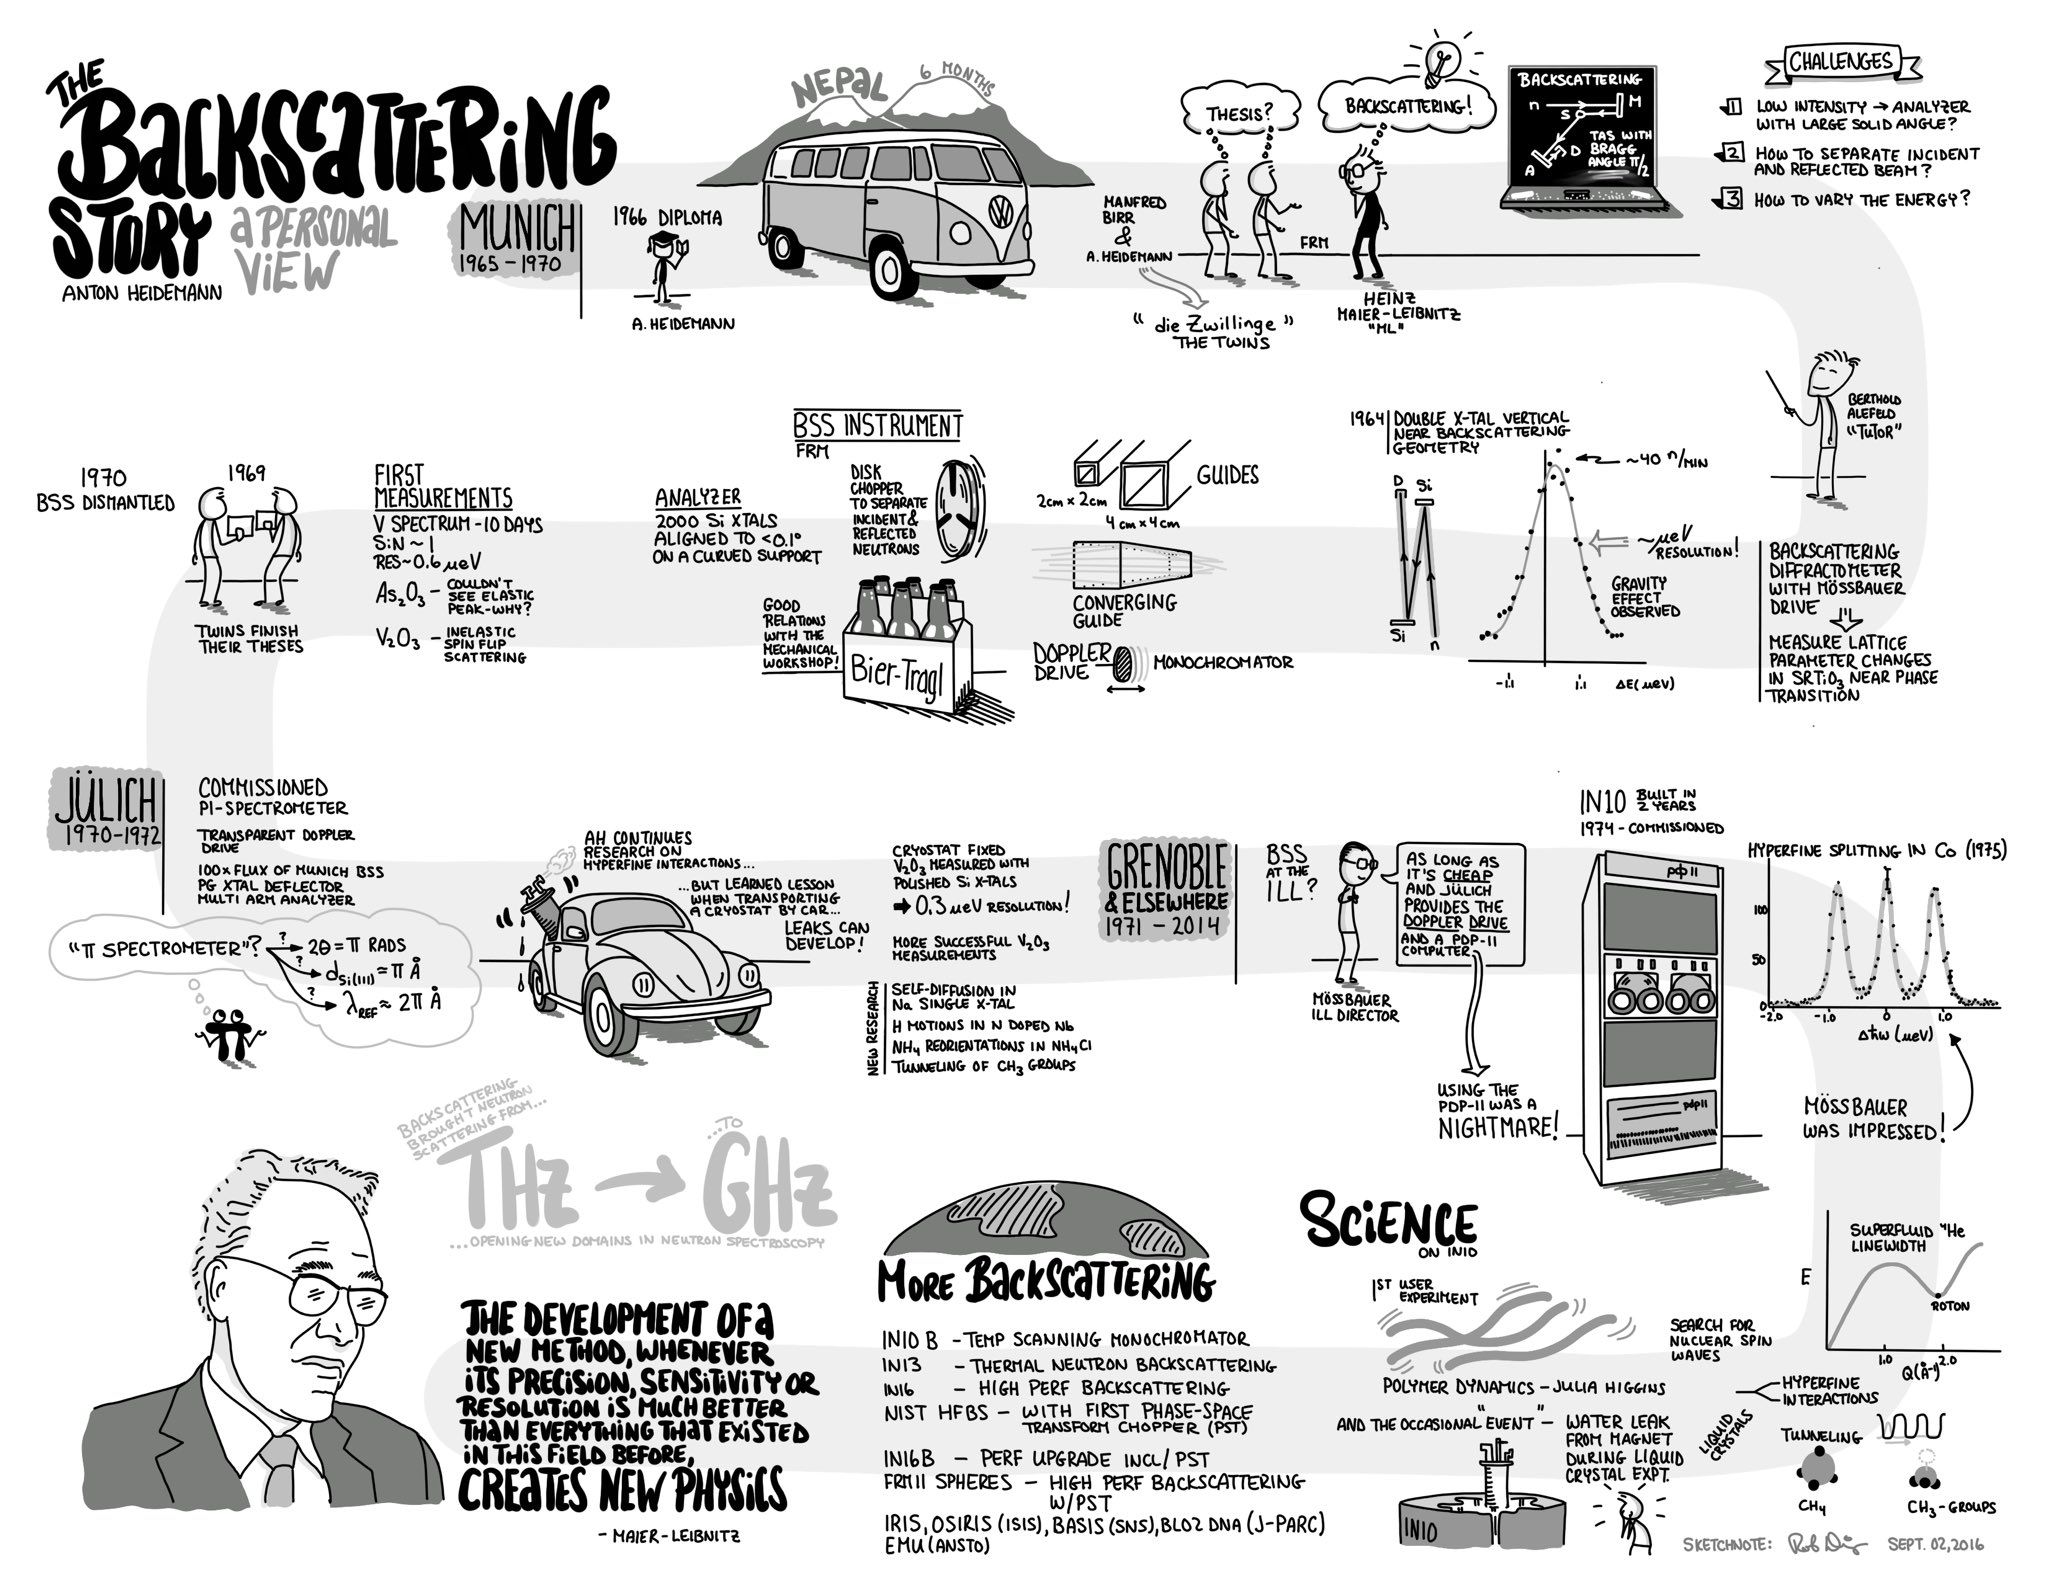 Today I had the pleasure of giving this Sketchnote to Toni Heidemann, a giant in the field. #neutronscattering https://t.co/dUnLlEGGDk